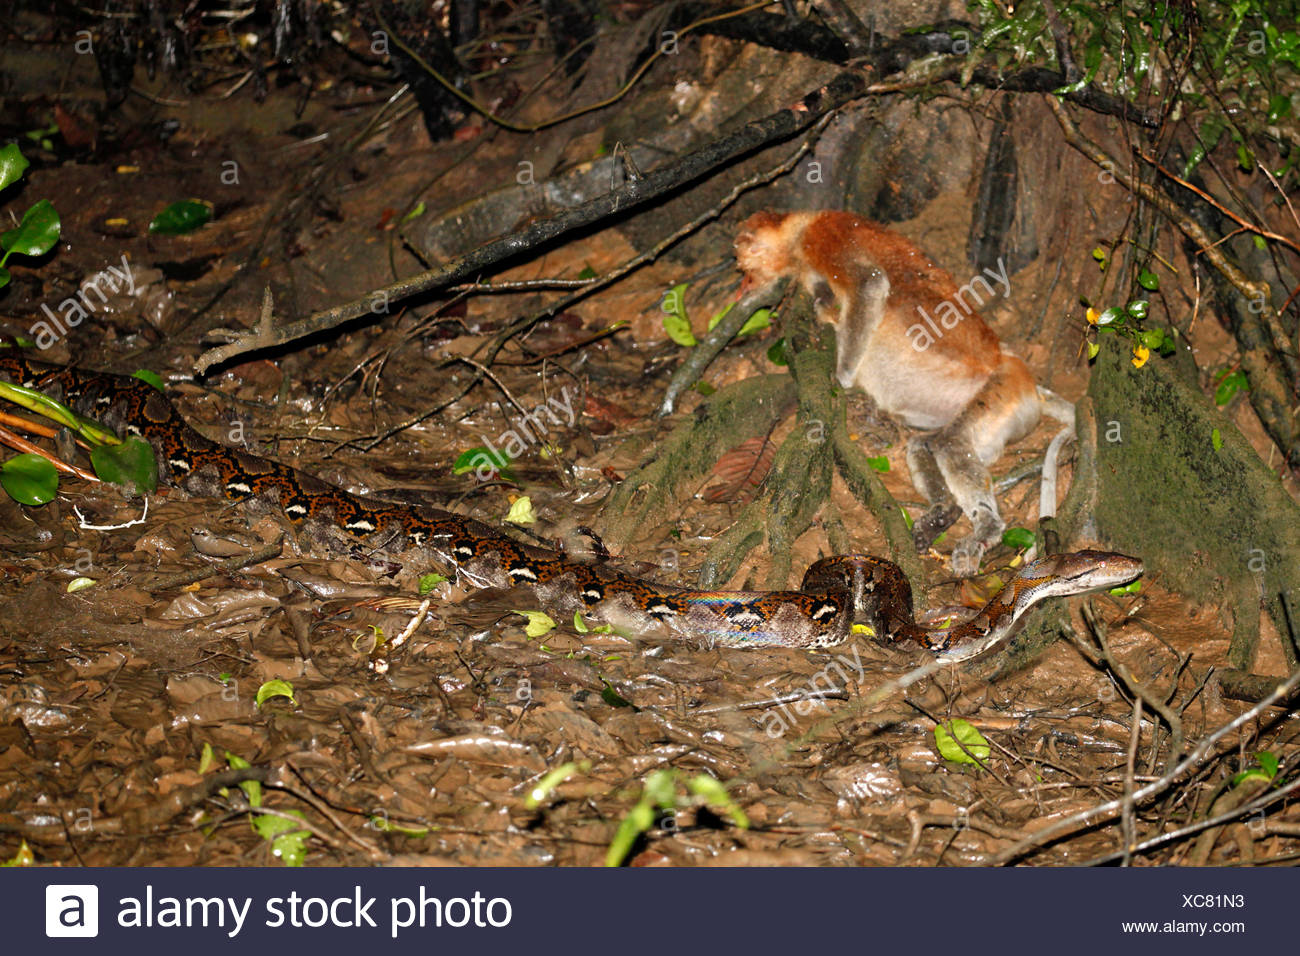 [Image: photo-of-a-enormous-reticulated-python-w...XC81N3.jpg]